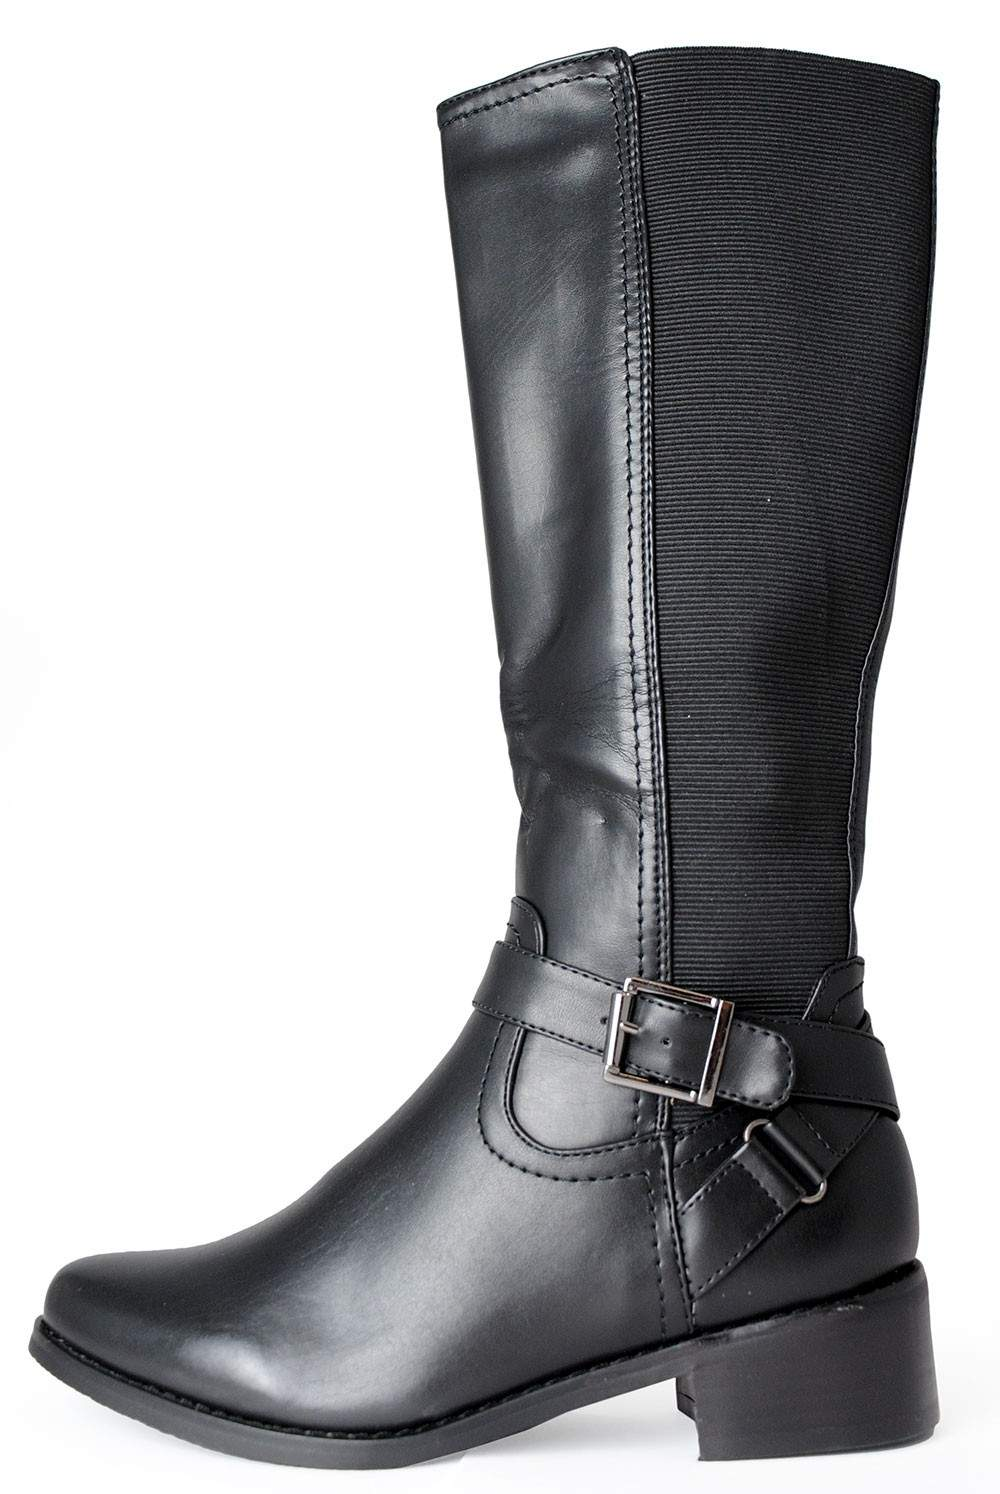 talbots black wren elastic boots. $ Buy It Now. $ 0 bids. New in box ankle high boots with a small heel Original price $ marked down to $ City Classified Women's Closed Toe Perforated Ruched Elastic Side Ankle Boot. $ Buy It Now.